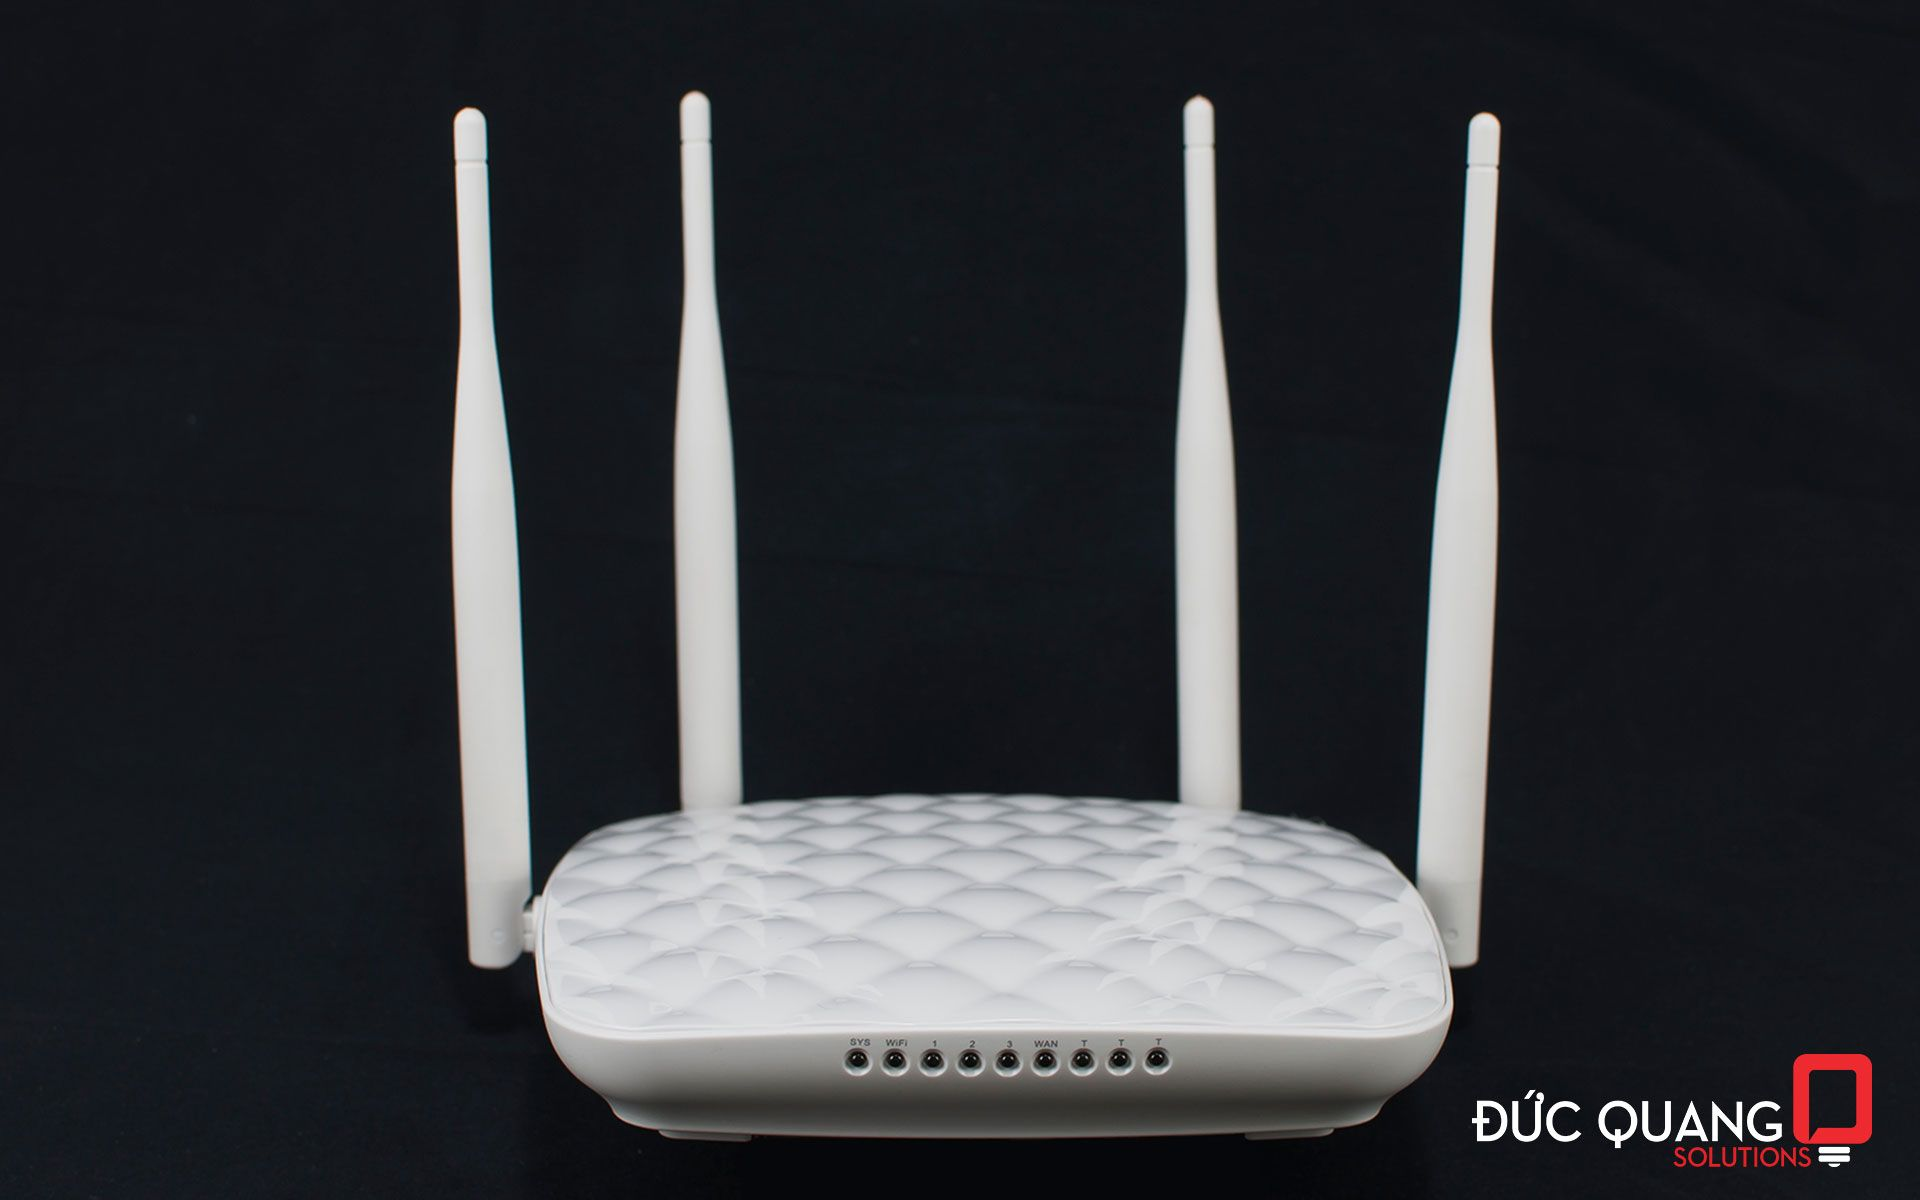 WiFi Tenda FH456 - Wireless Router